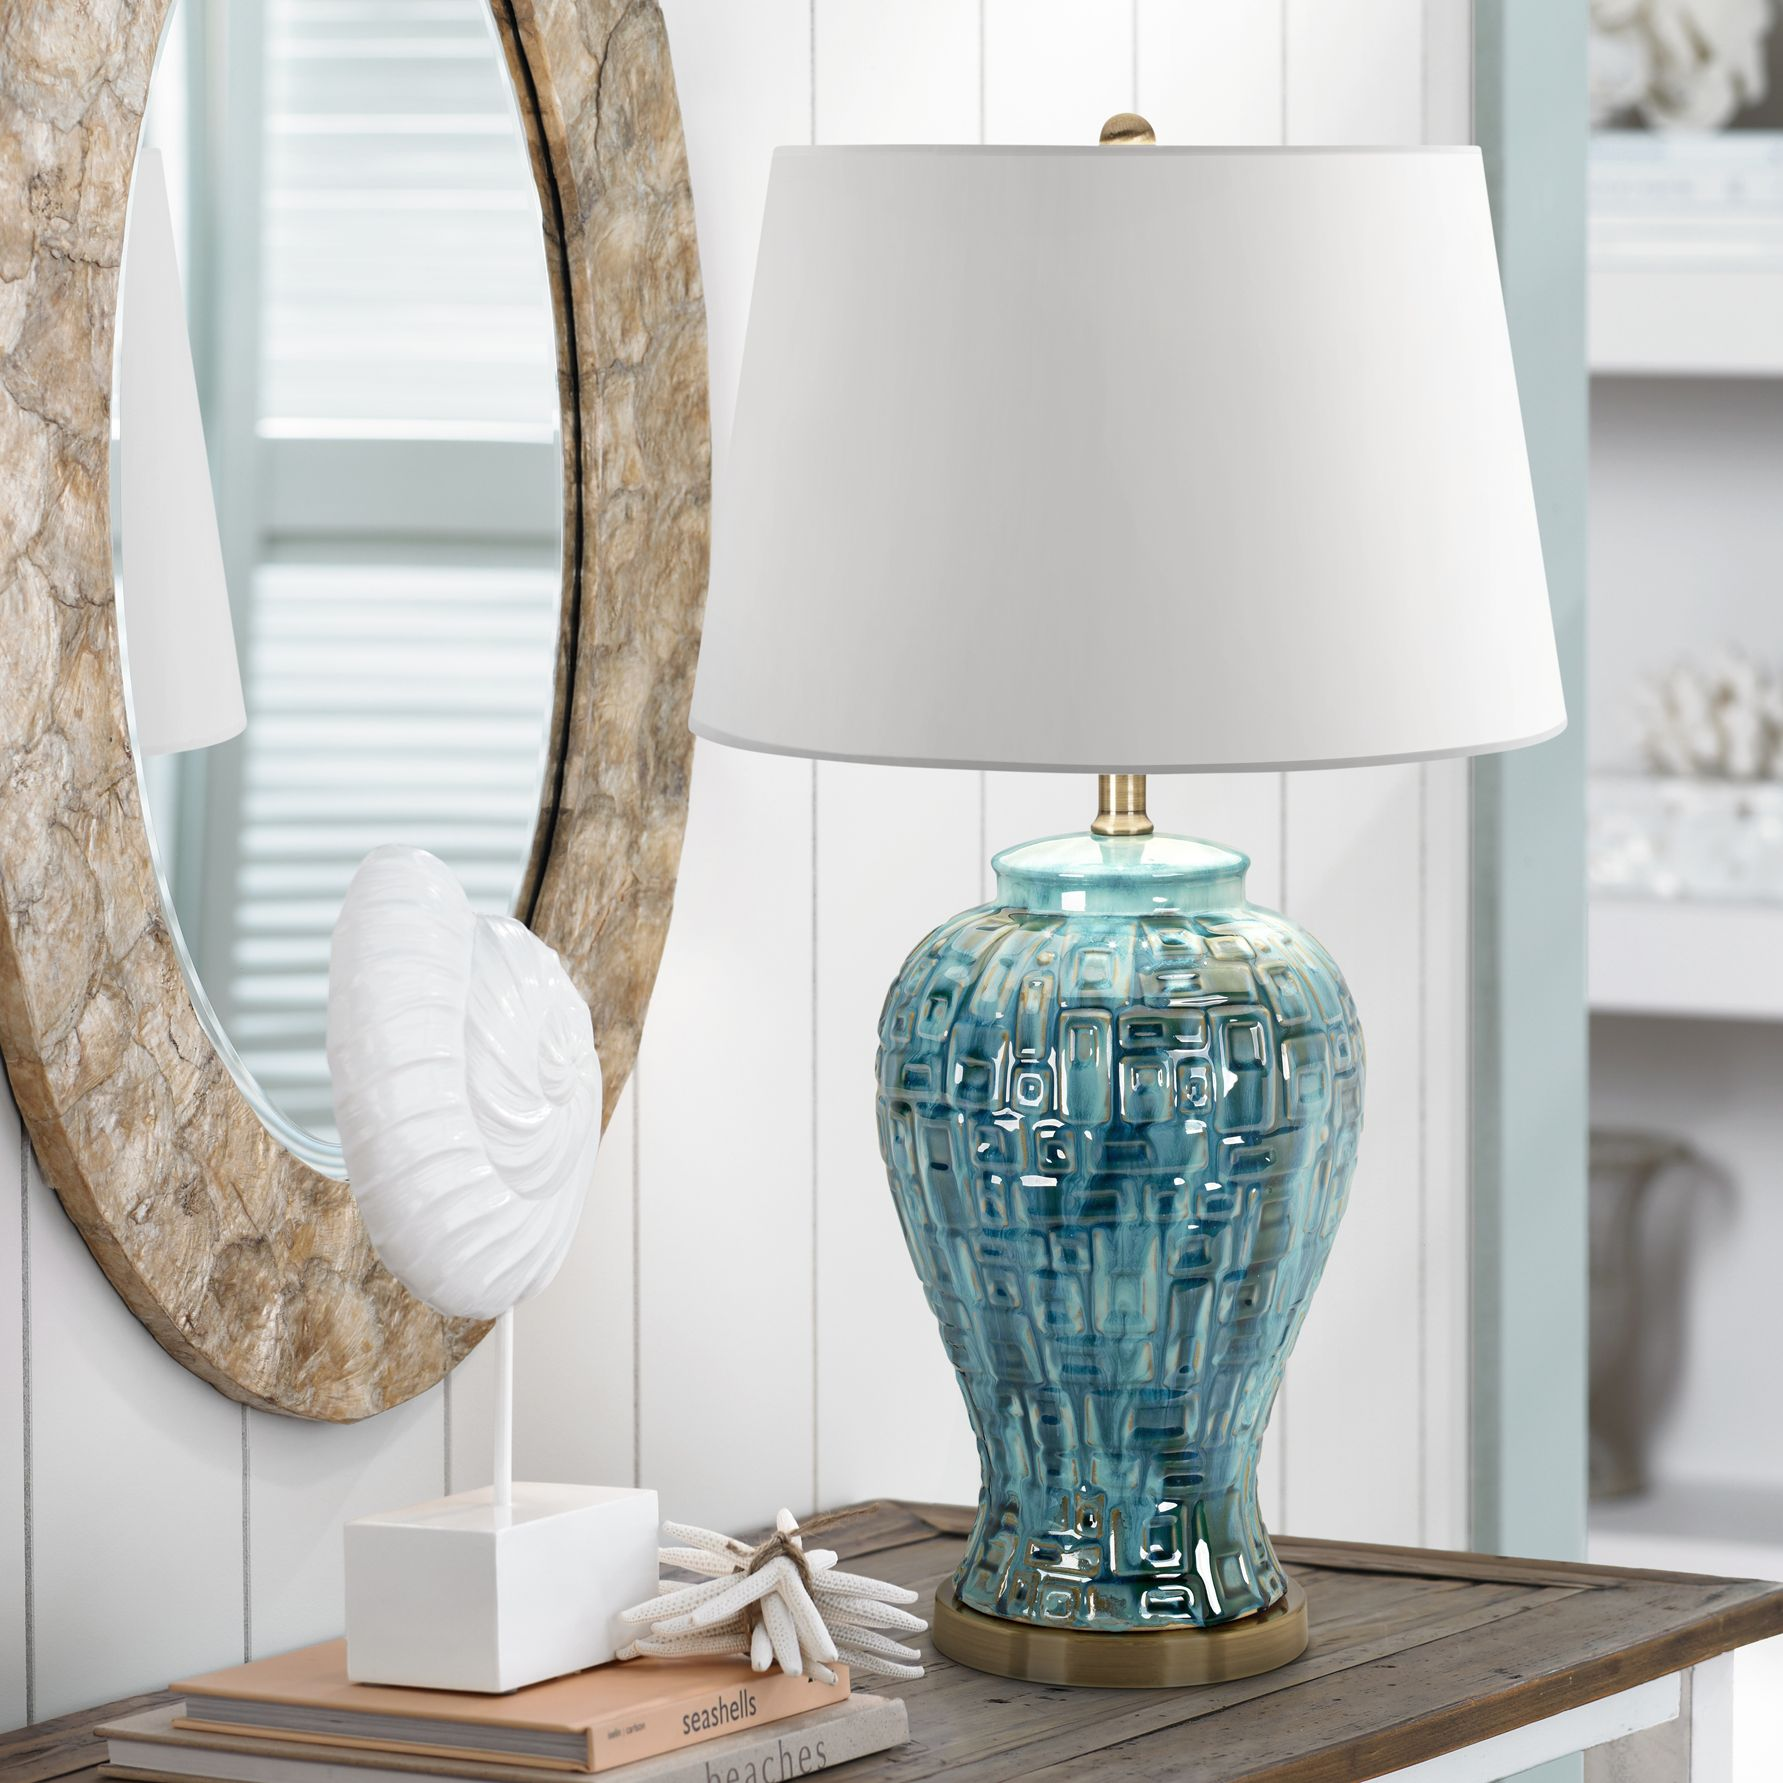 Possini Euro Design Asian Table Lamp Ceramic Teal Glaze Patterned Temple Jar White Empire Shade for Living Room Family Bedroom